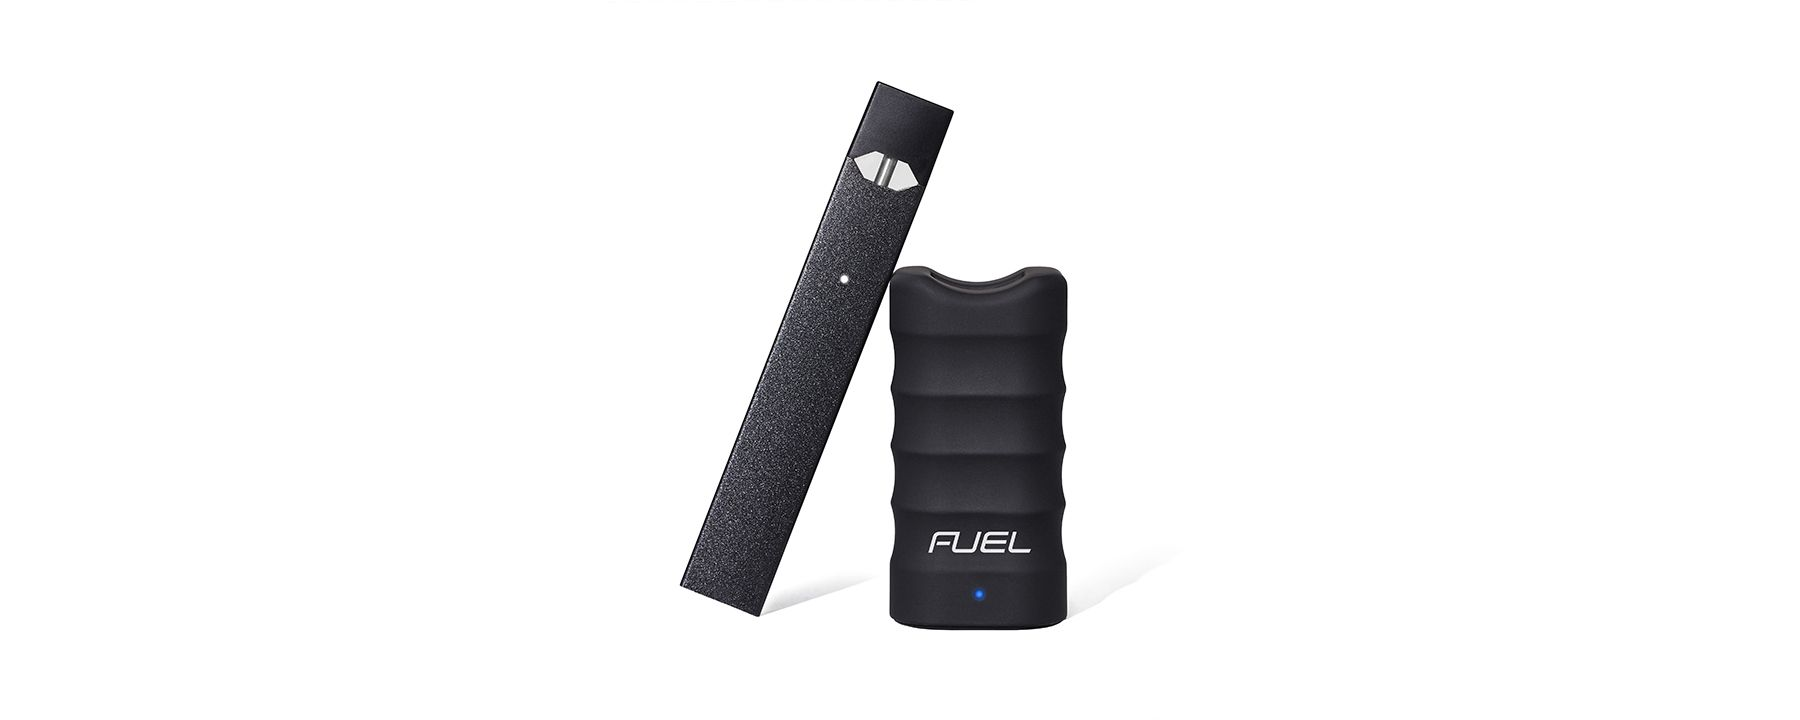 Juul Portable Charger - Juul Charger | Fuel Tech